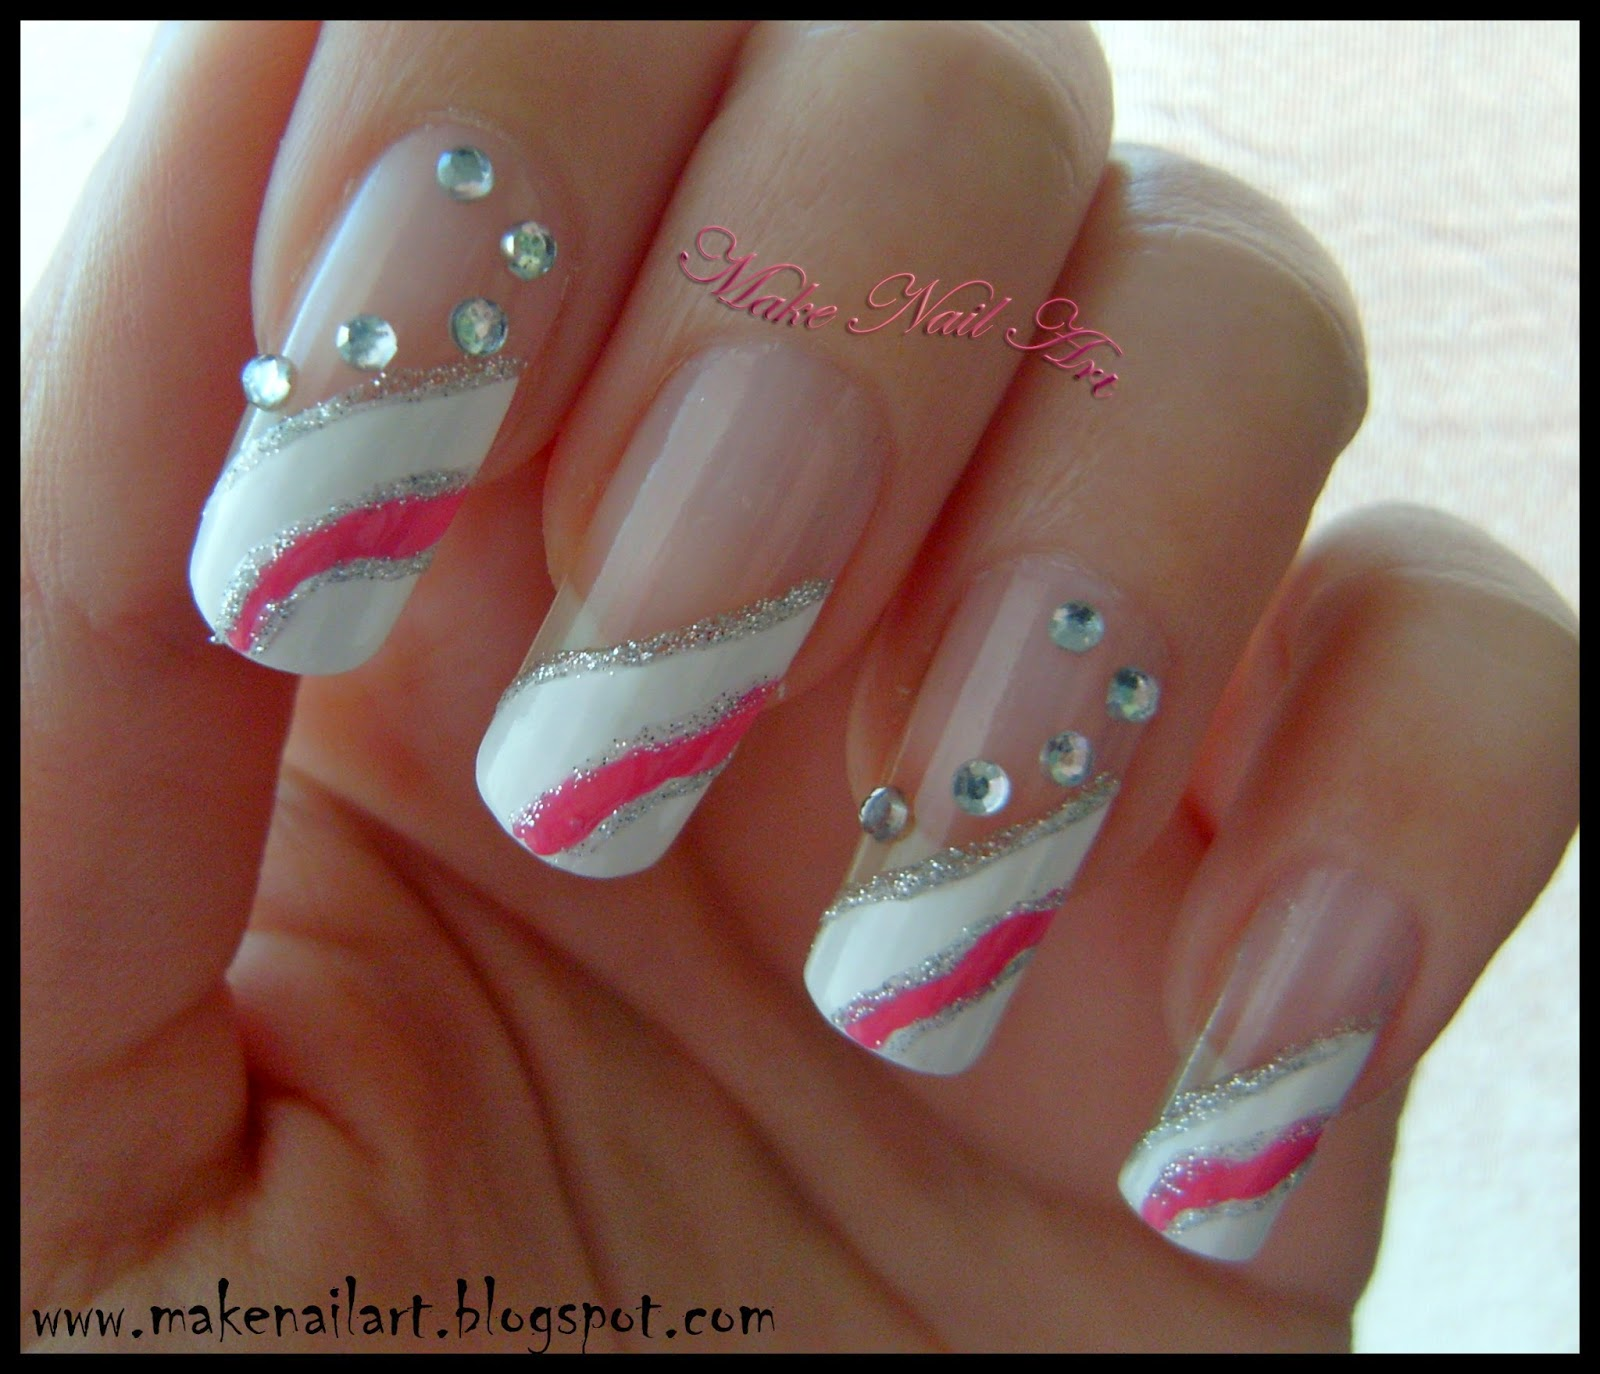 Nail Art For Prom: Make Nail Art: White And Pink Prom Nails Nail Art Tutorial